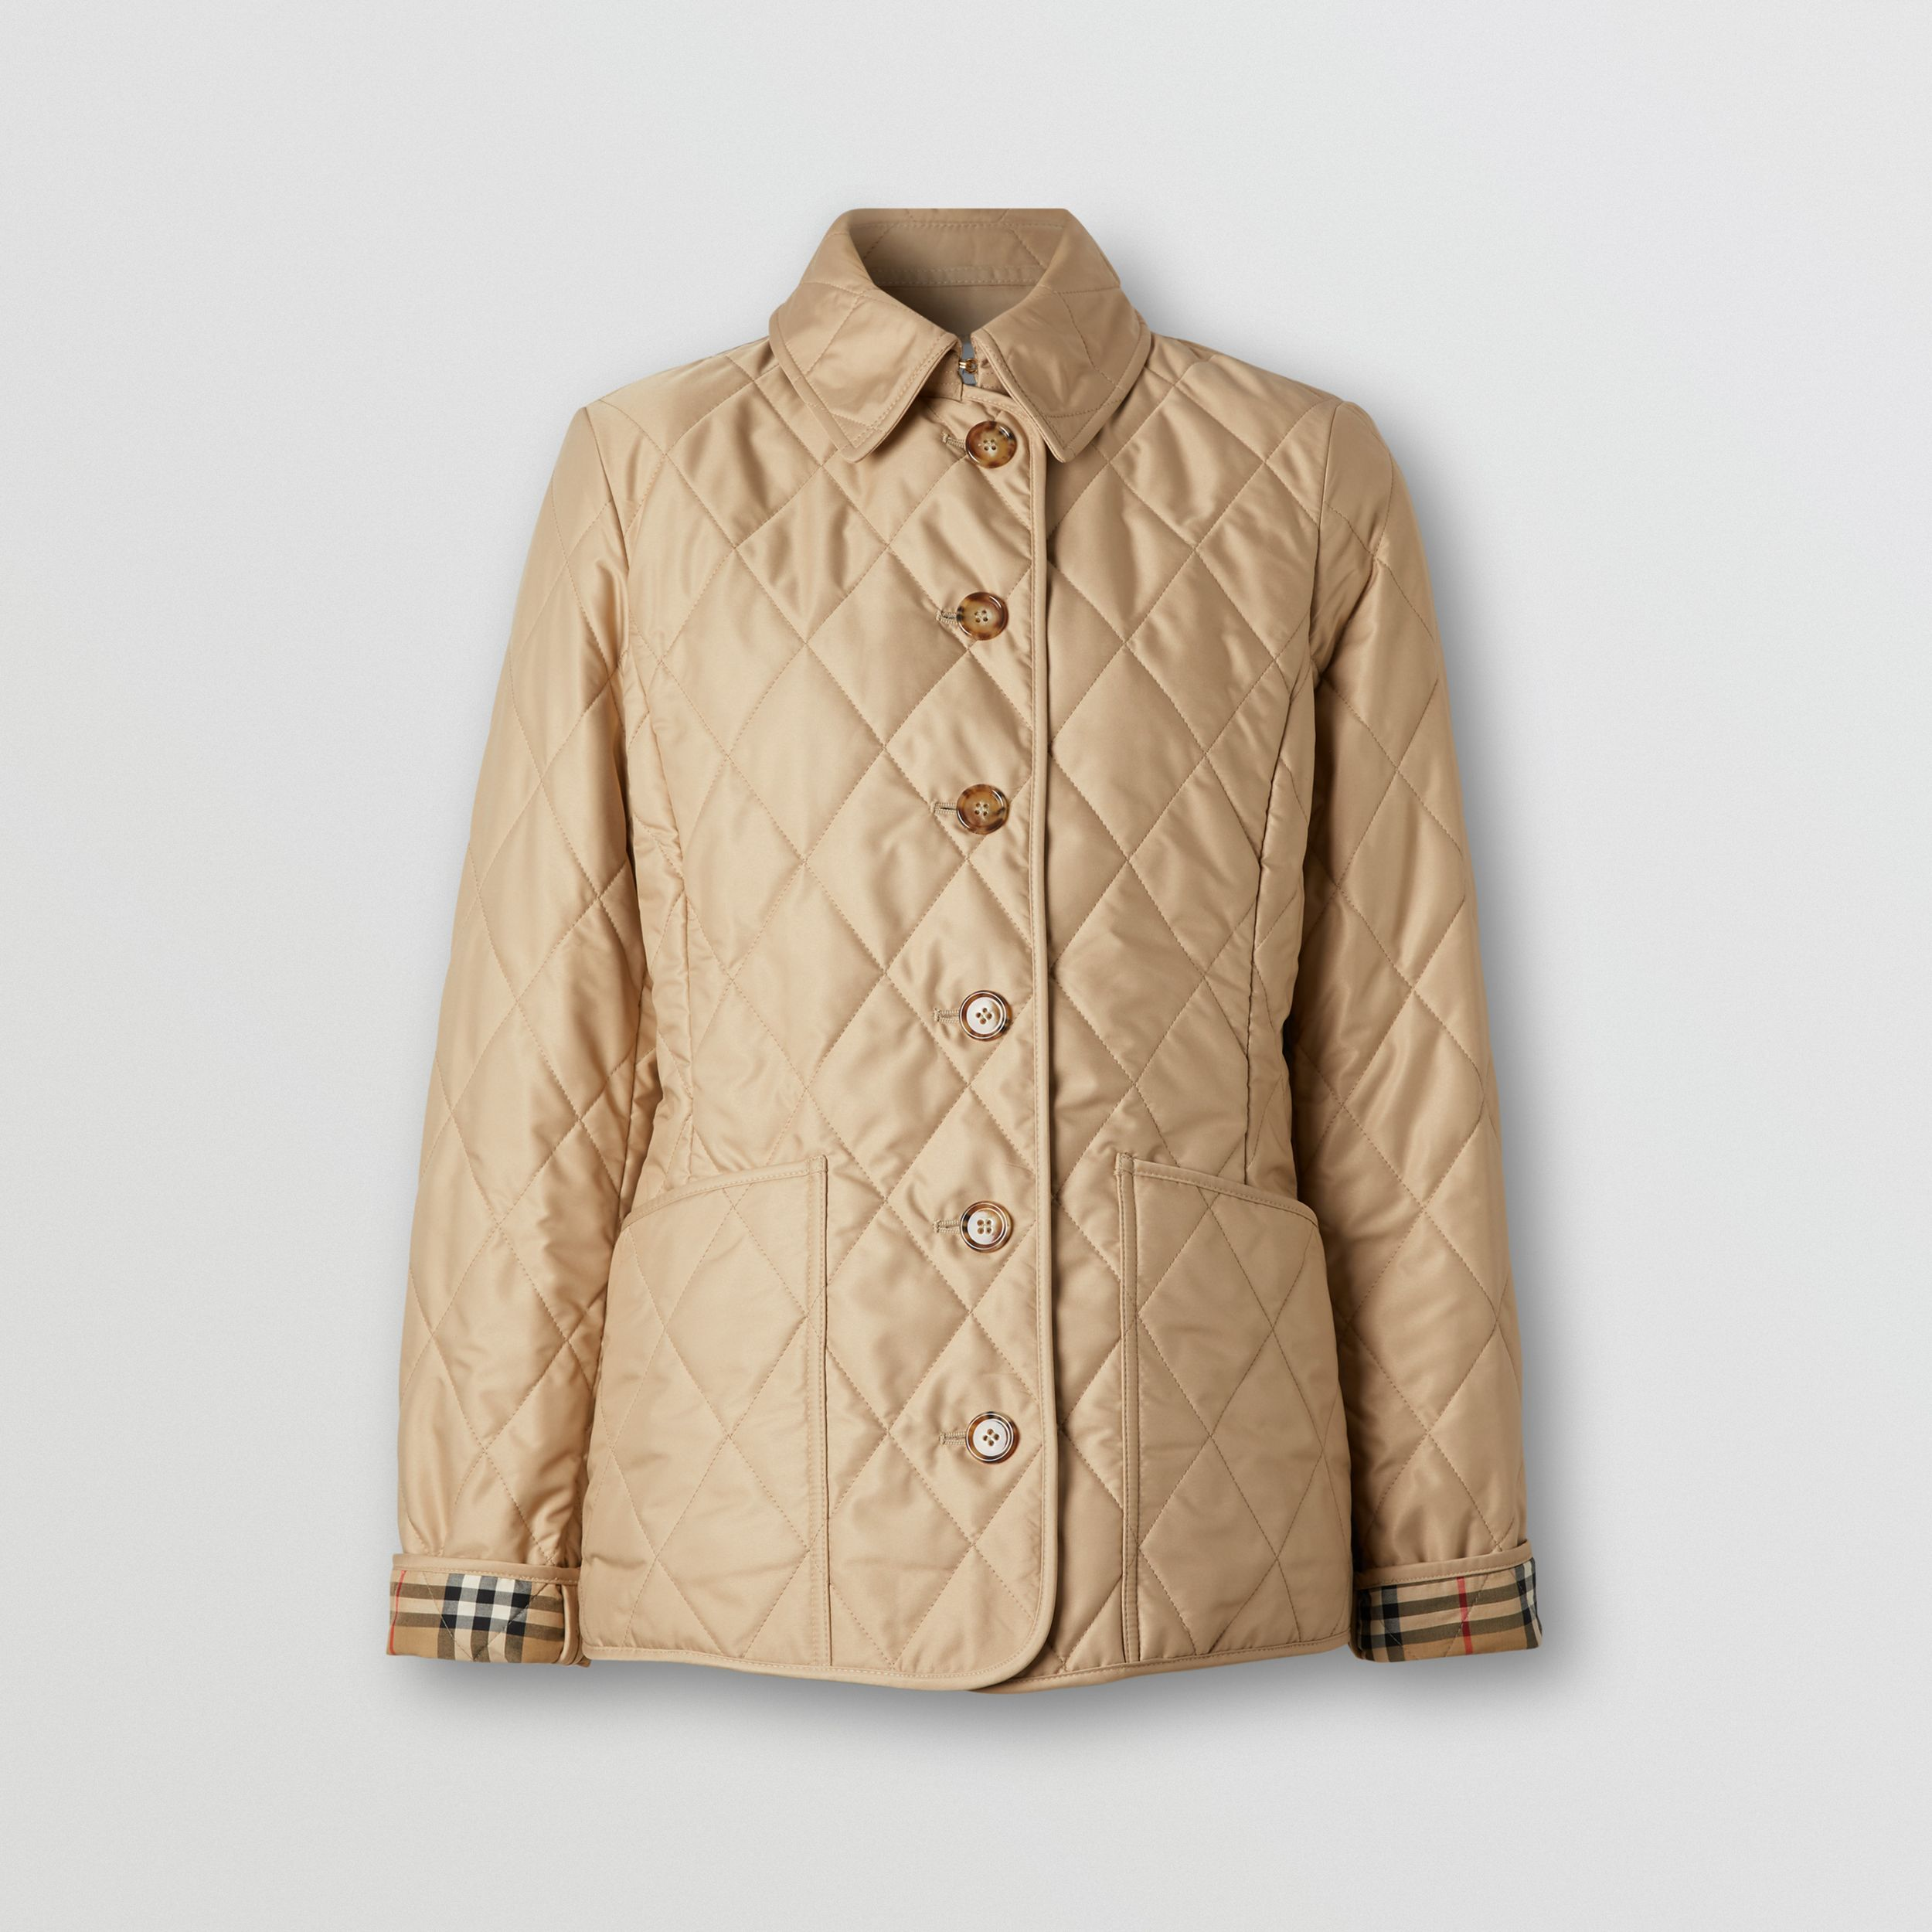 Diamond Quilted Thermoregulated Jacket in New Chino - Women | Burberry - 4